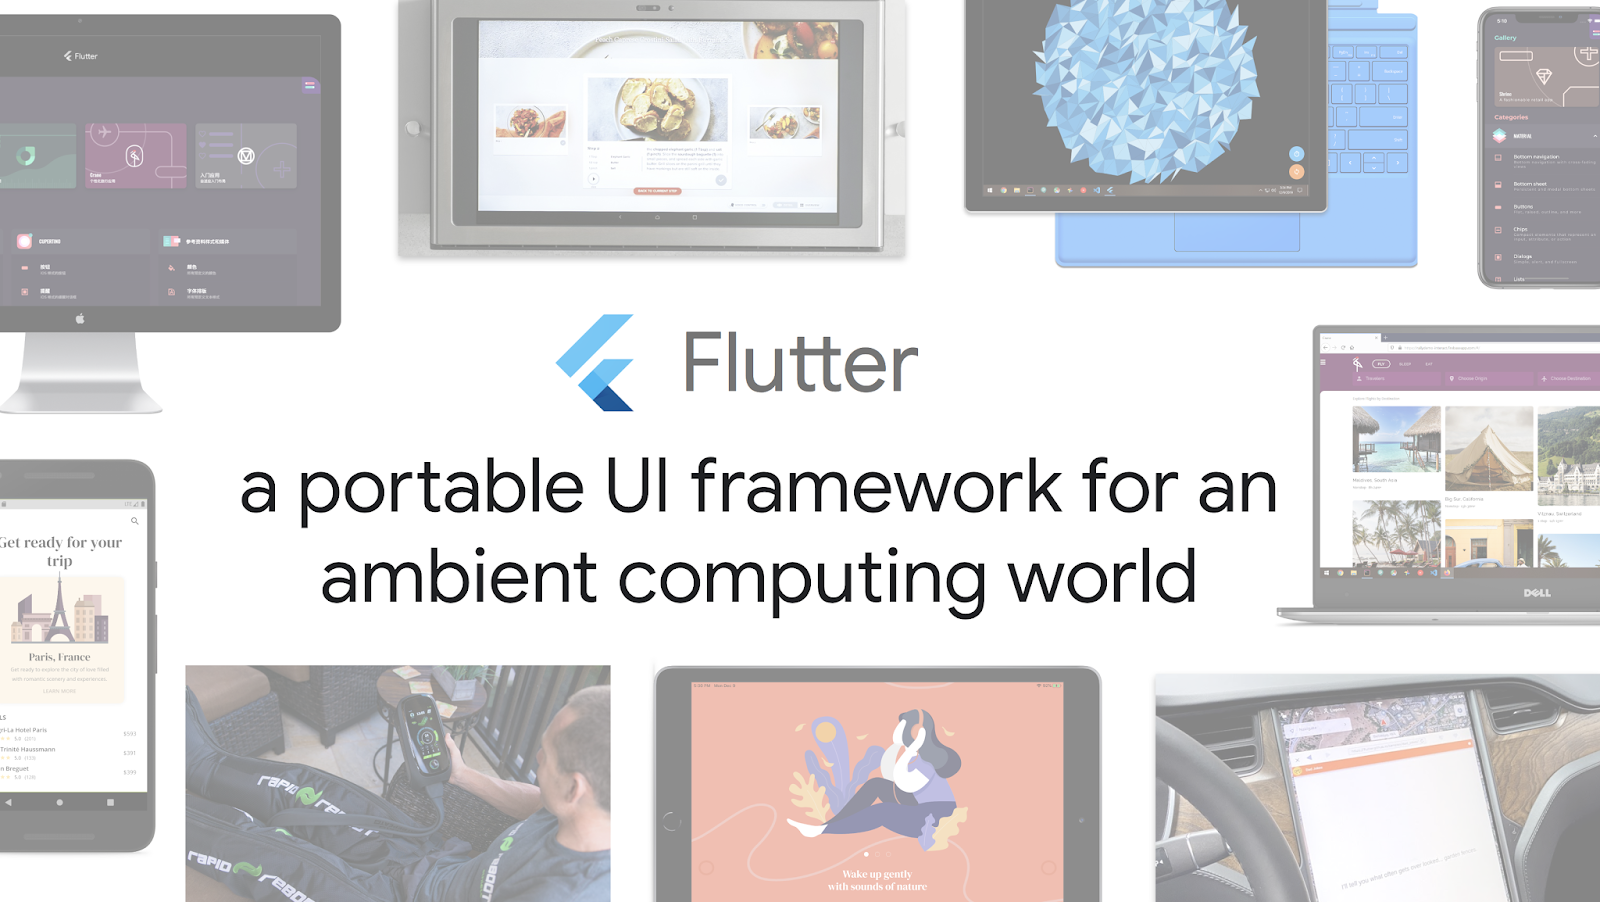 Google's Flutter v1.12 UI framework adds support for web plugins, building macOS apps, and much more